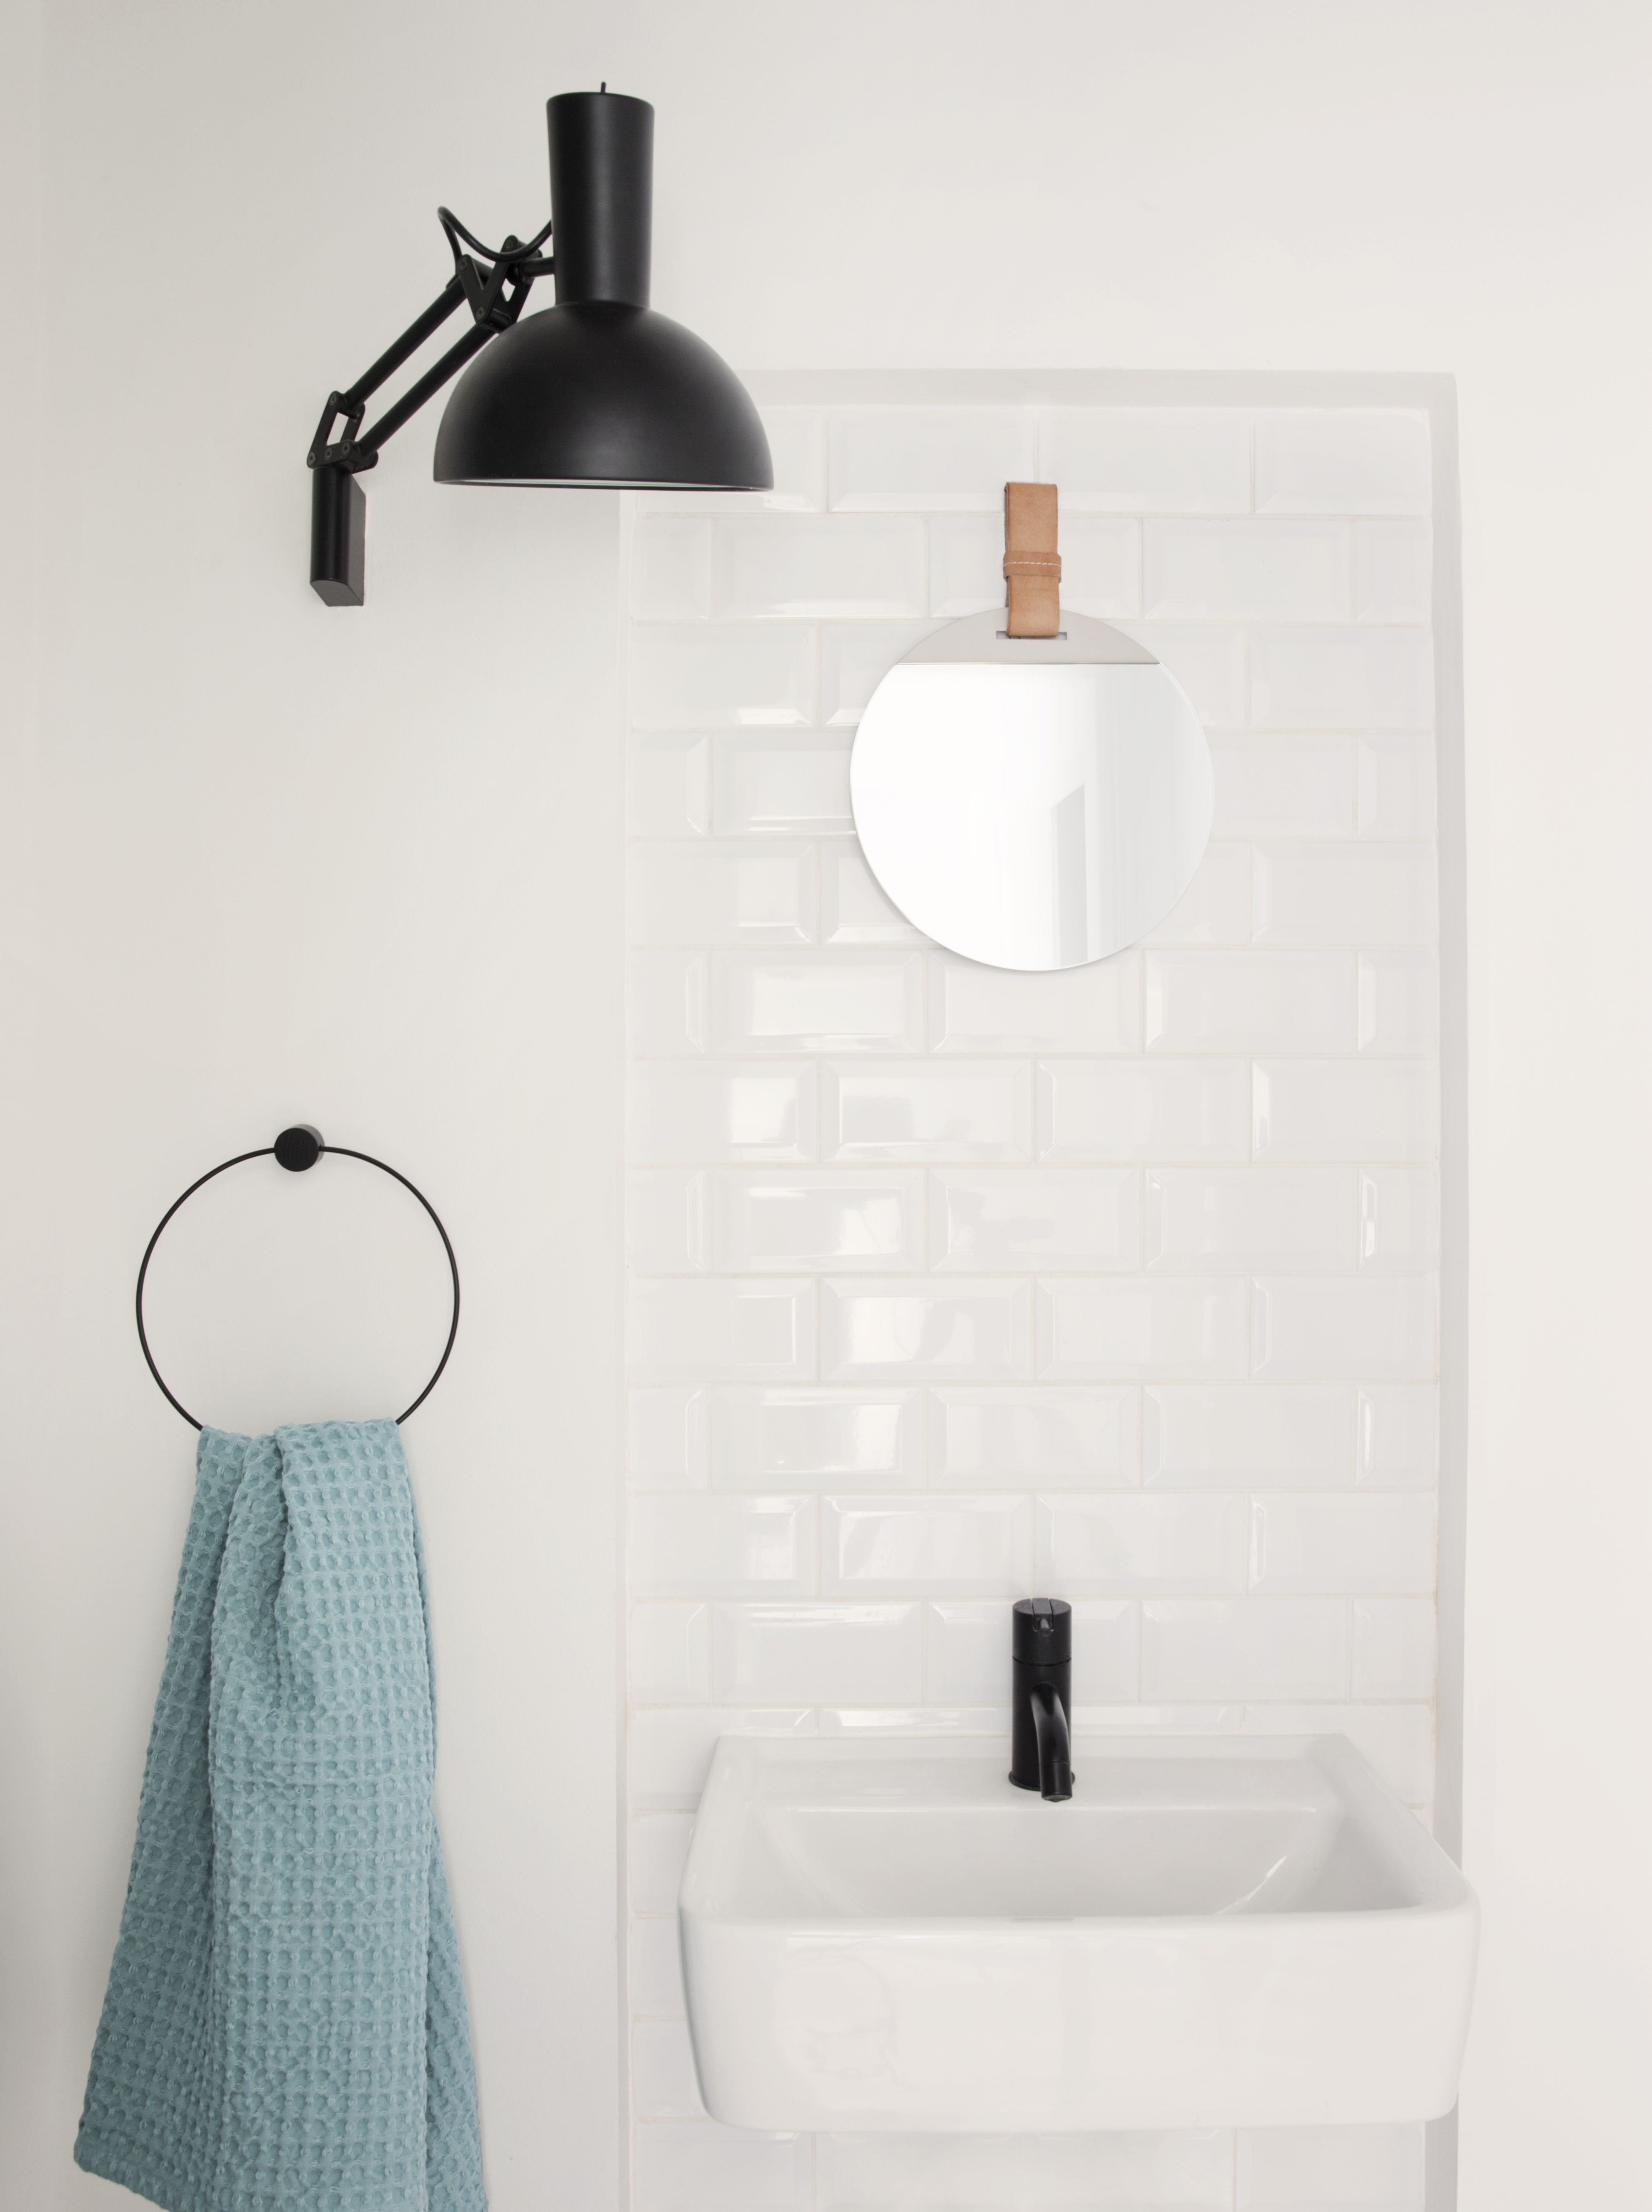 Handtuchhalter Gäste Wc Towel Hanger And Enyer Mirror From Ferm Living Bathroom